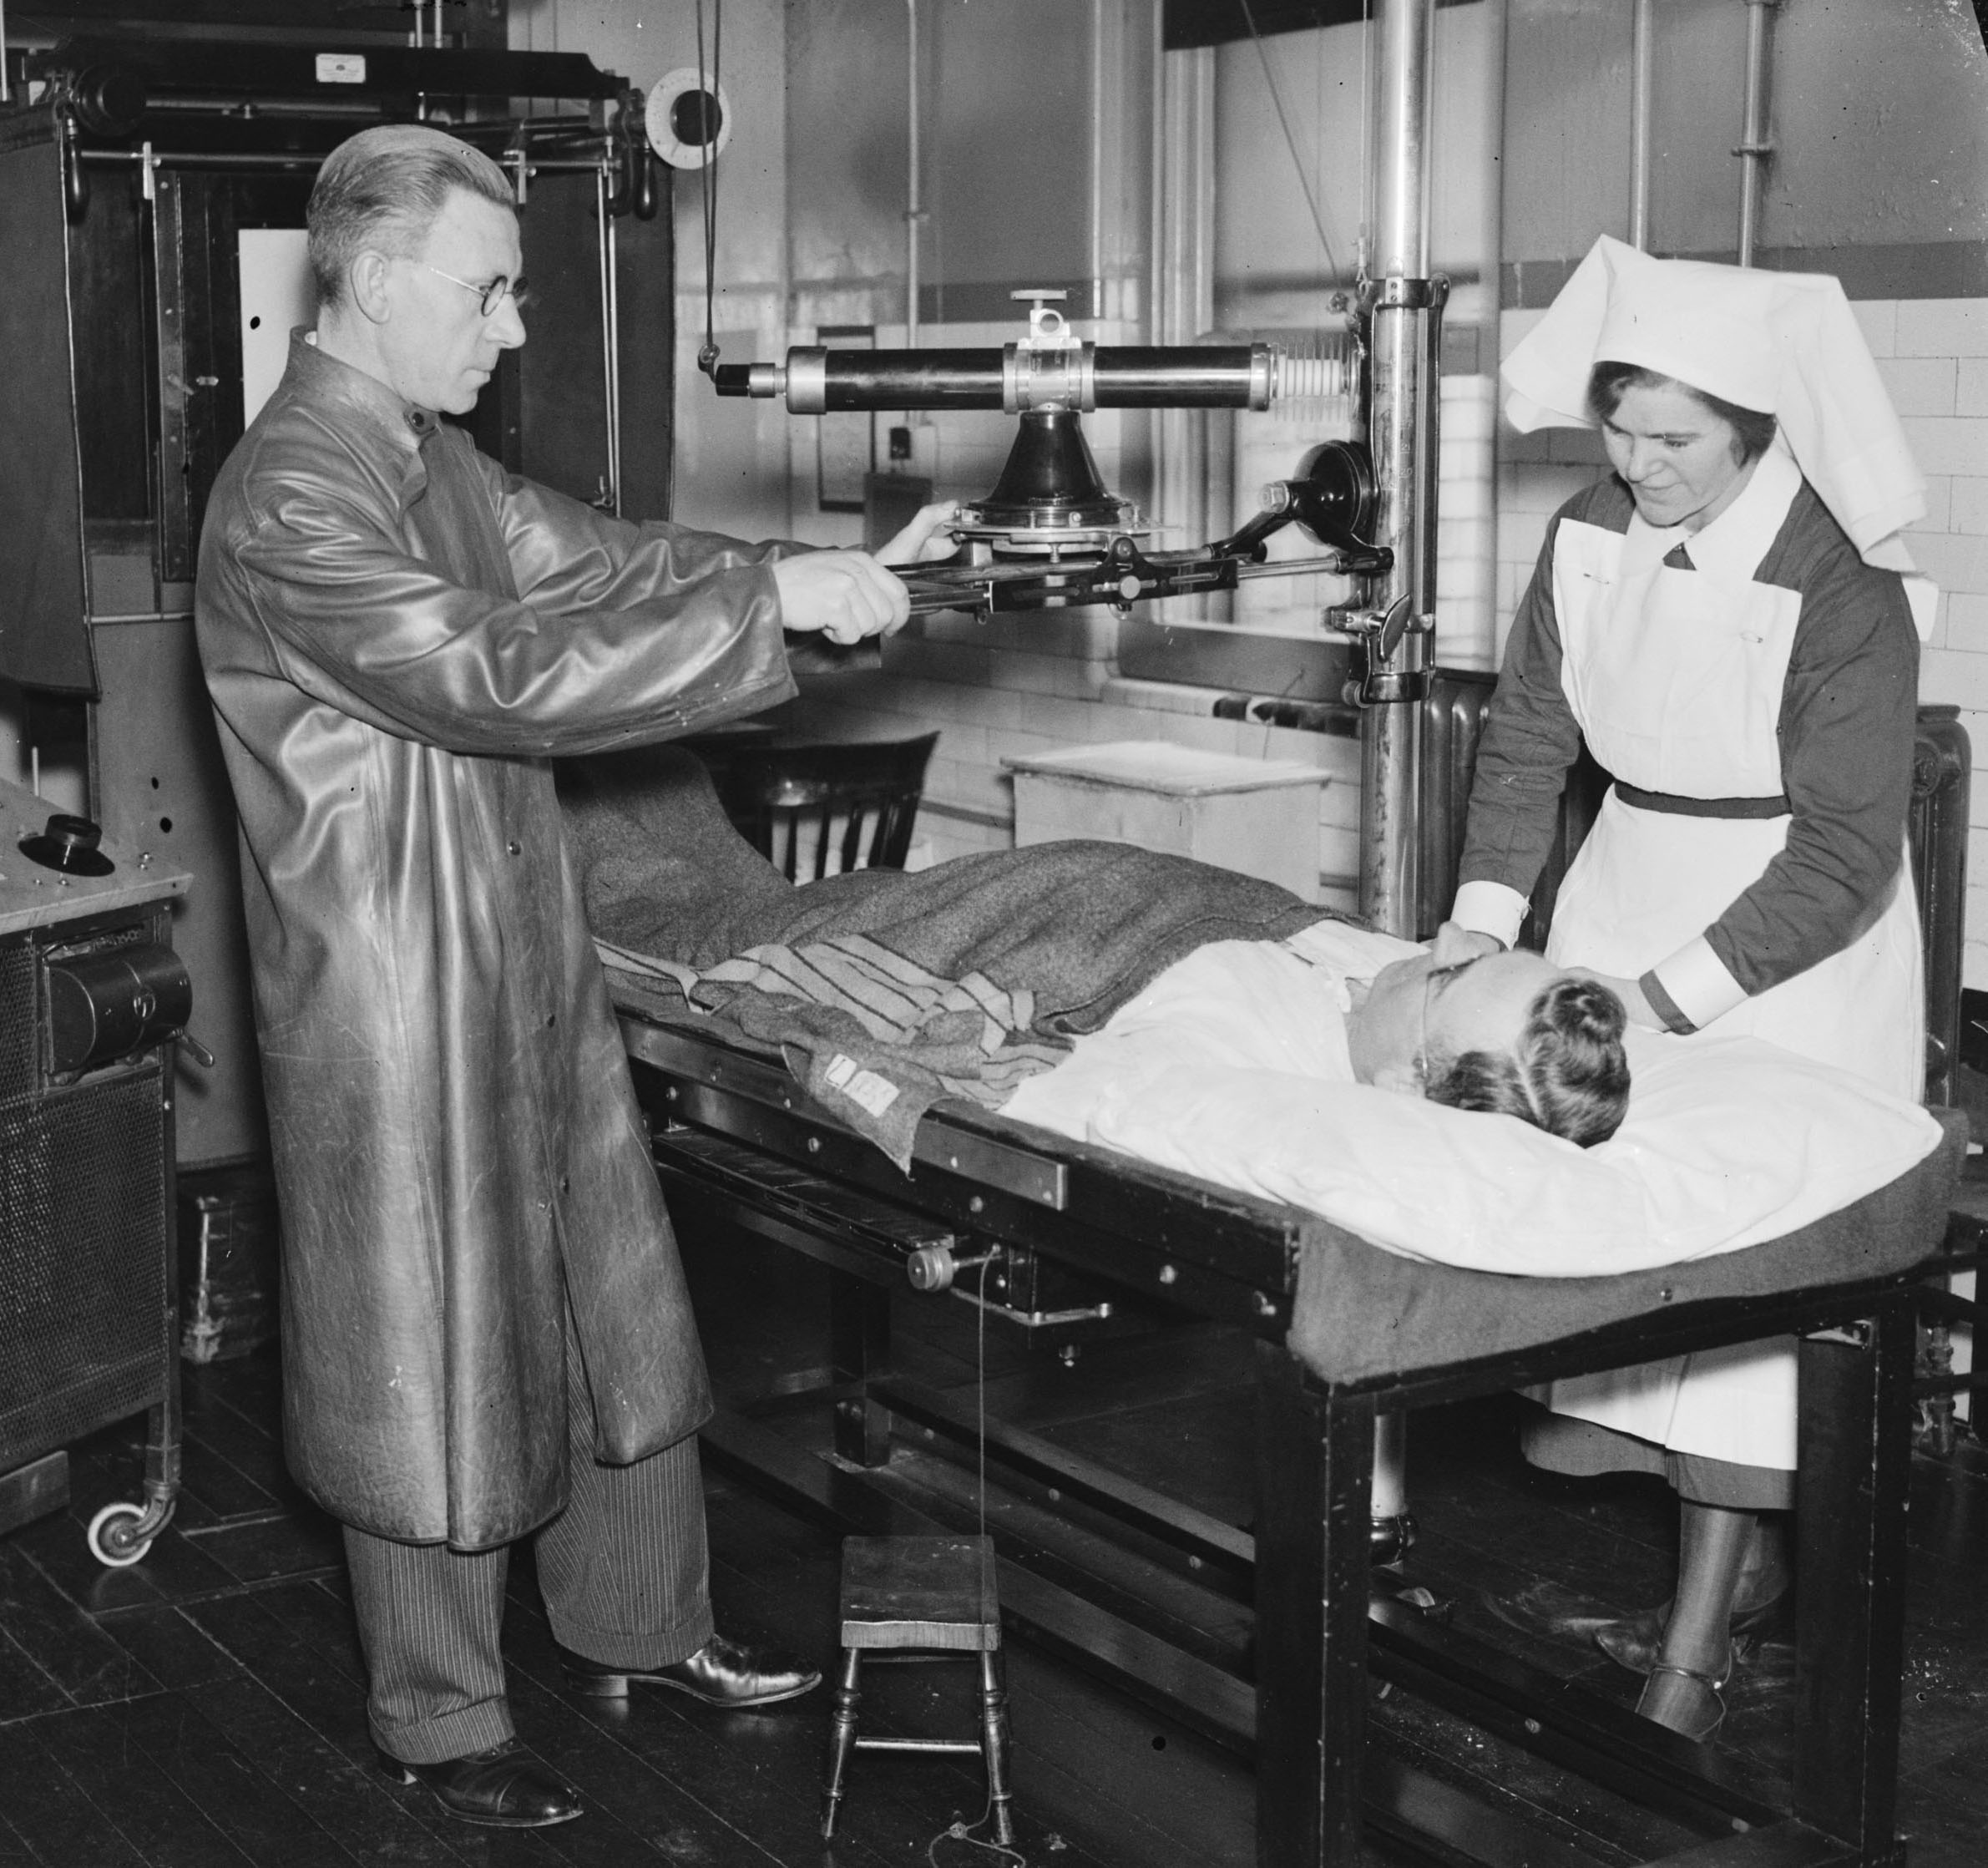 1932 photograph of staff taking an X-ray of a patient at Charing Cross Hospital, London. As a nurse makes the patient comfortable, the radiologist, in heavy protective clothing, sets up the X-ray machine.